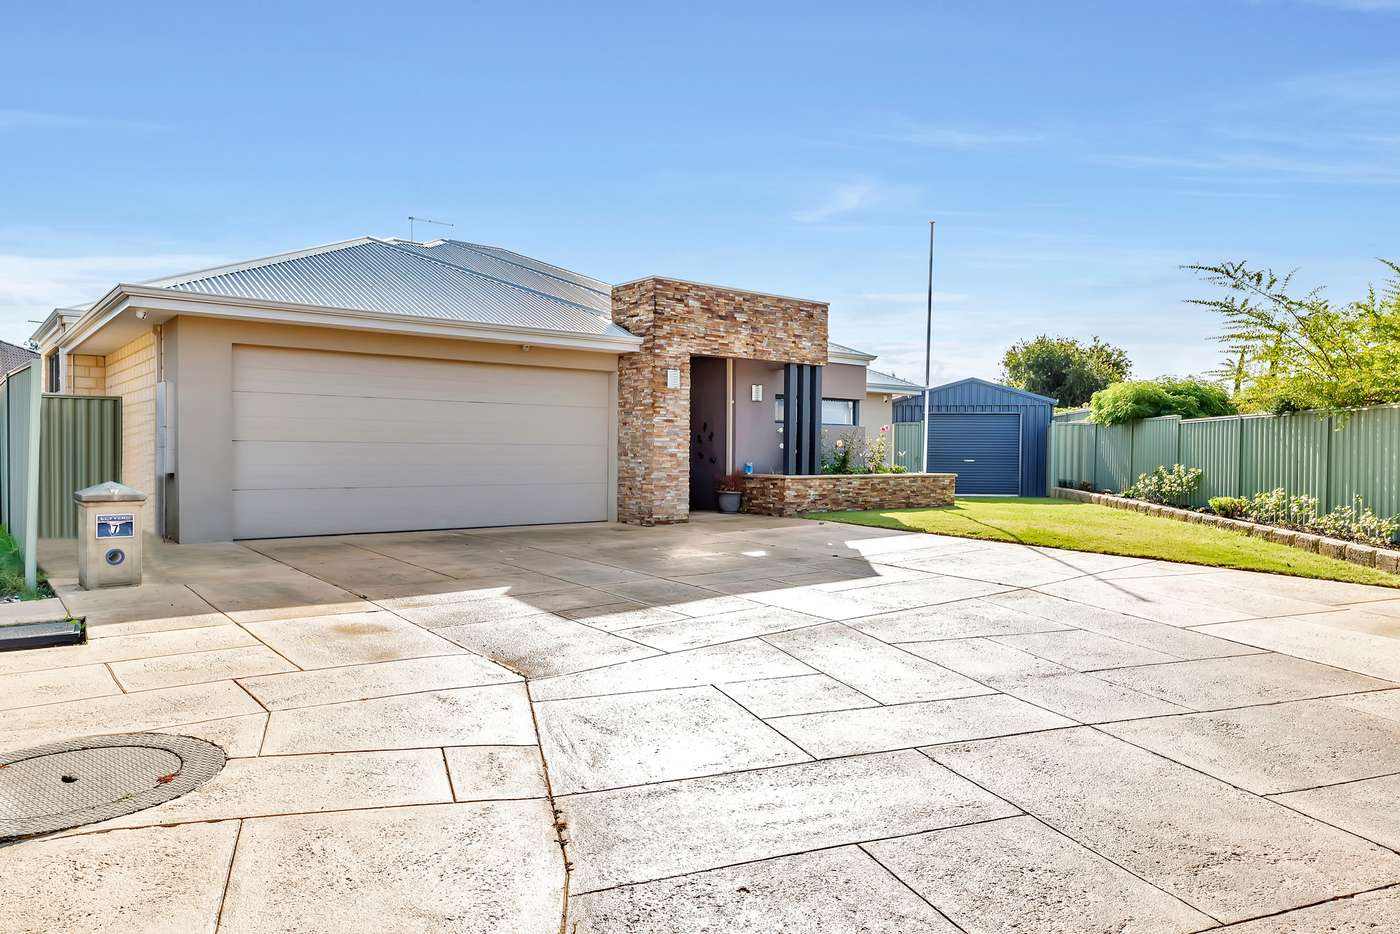 Main view of Homely house listing, 7 Woodstock Turn, Ravenswood WA 6208